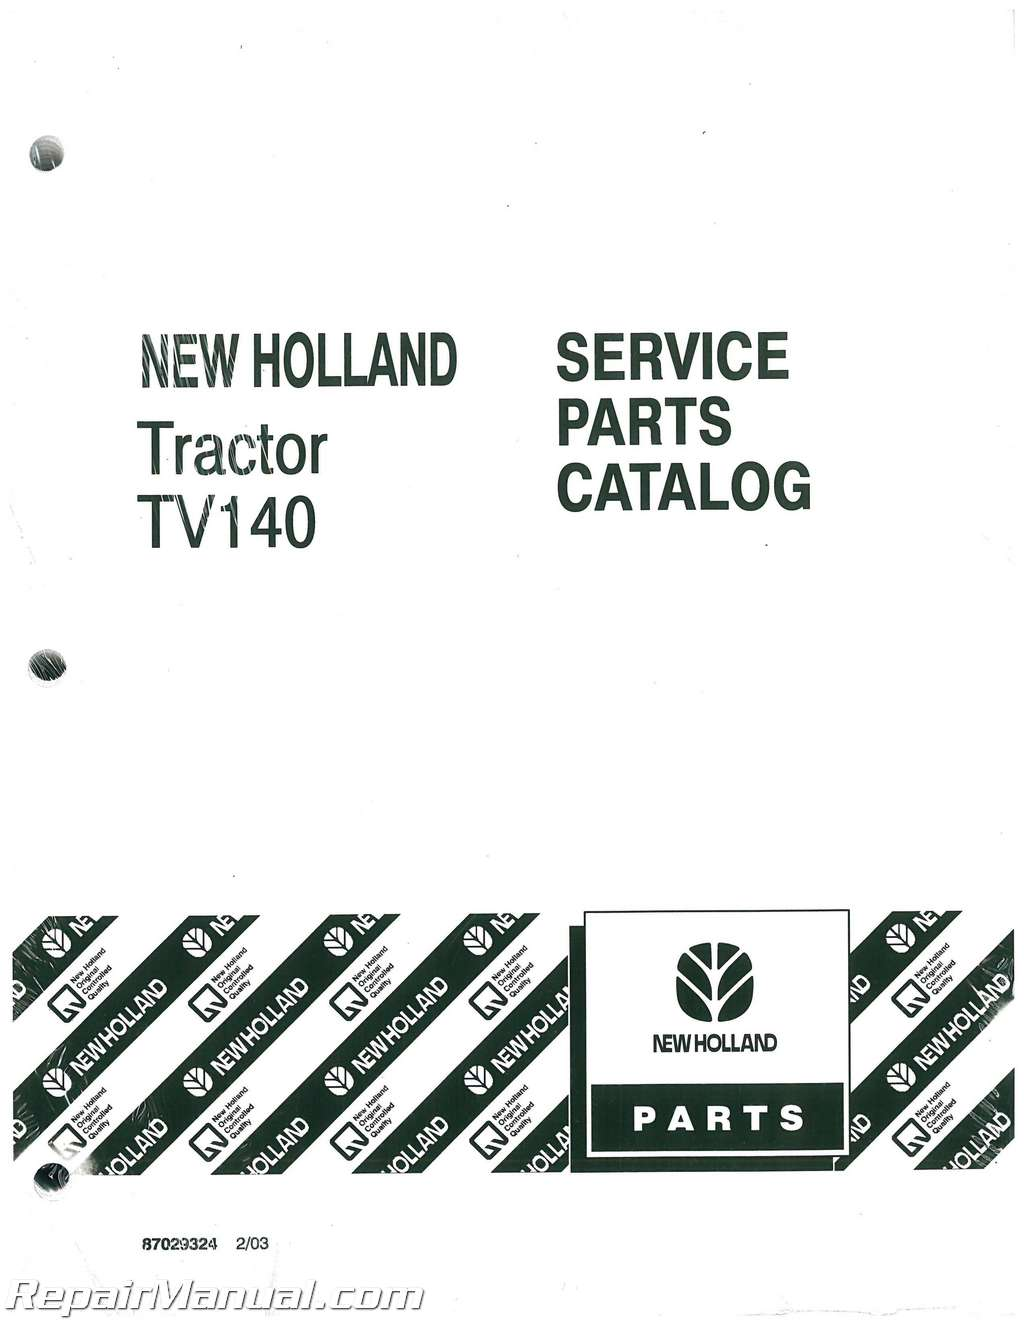 ford new holland tv140 dsl bidirectional 4wd tractor parts manual rh repairmanual com new holland parts manual for tc30 tractor new holland parts catalog ngpc